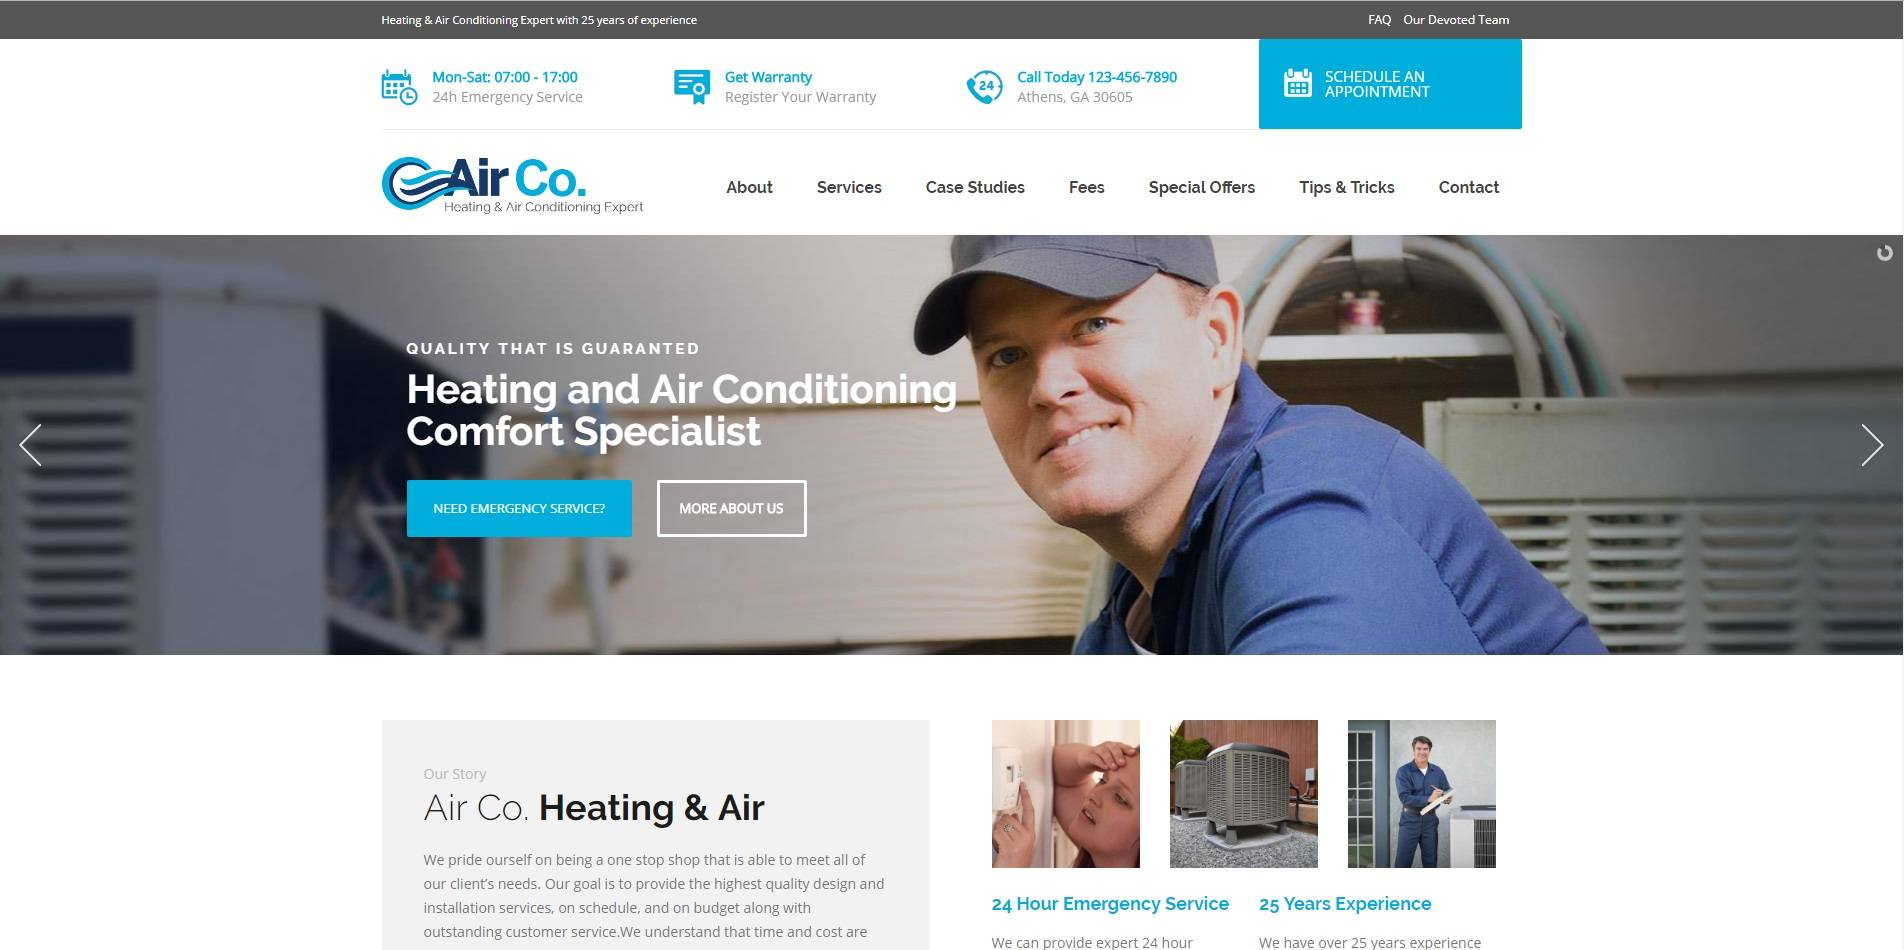 A Company Website For Heating, Air Conditioning & Maintenance Services